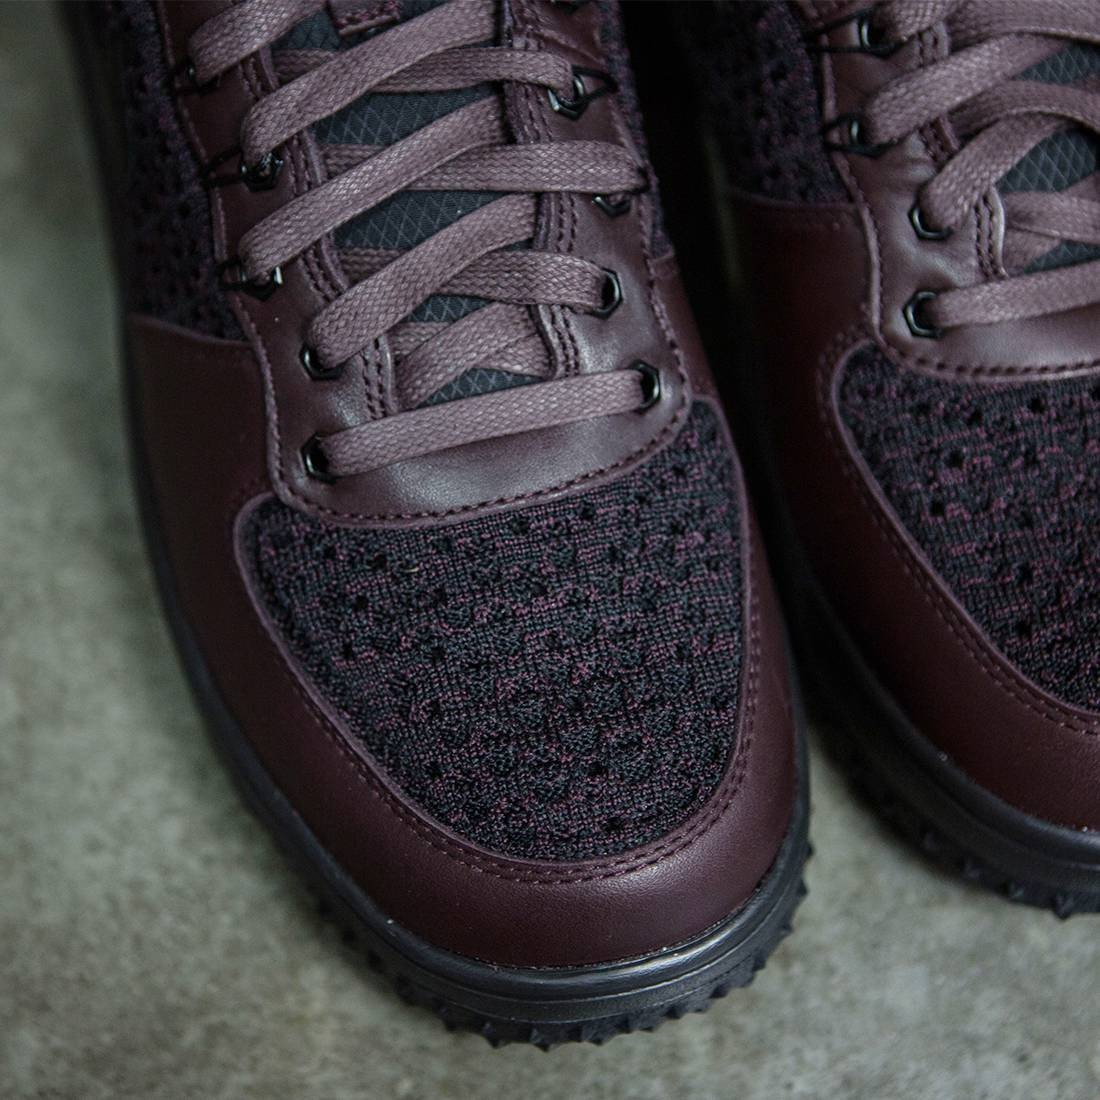 finest selection bf1f1 76e15 Nike Men Lunar Force 1 Flyknit Workboot (deep burgundy   black-summit white)